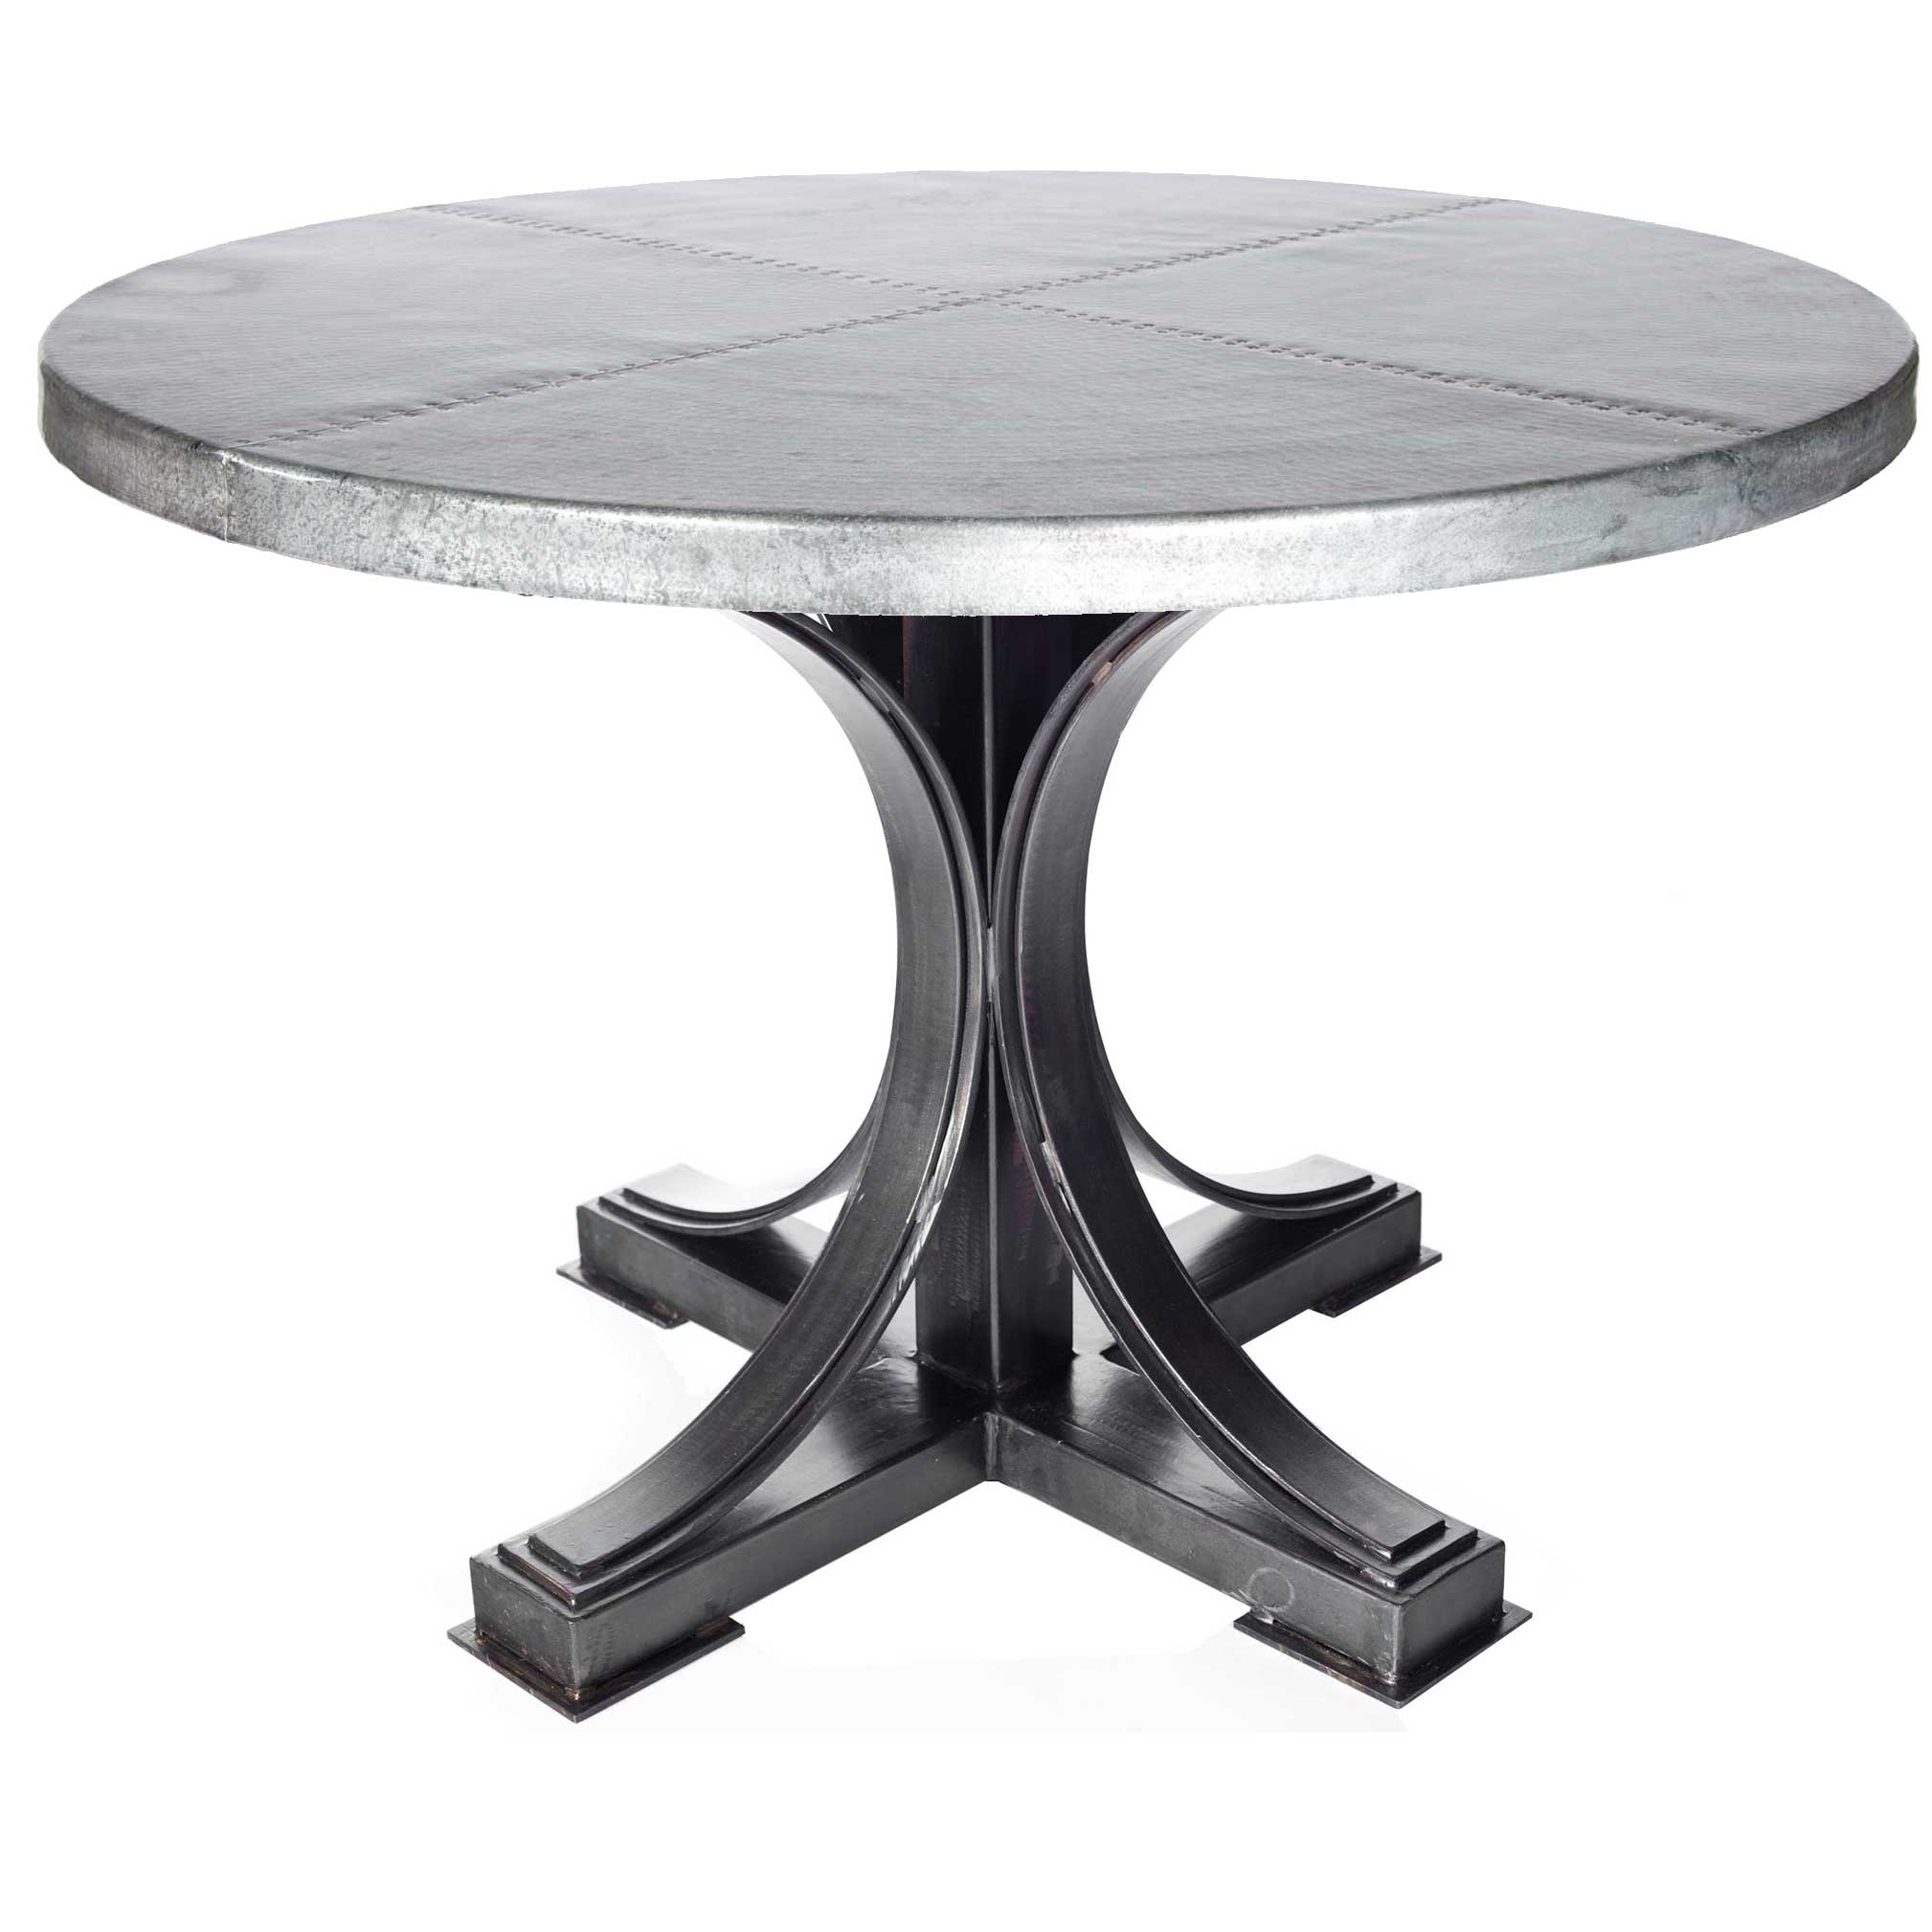 Winston Iron Dining Table with 54-in. Round Hammered Zinc Top